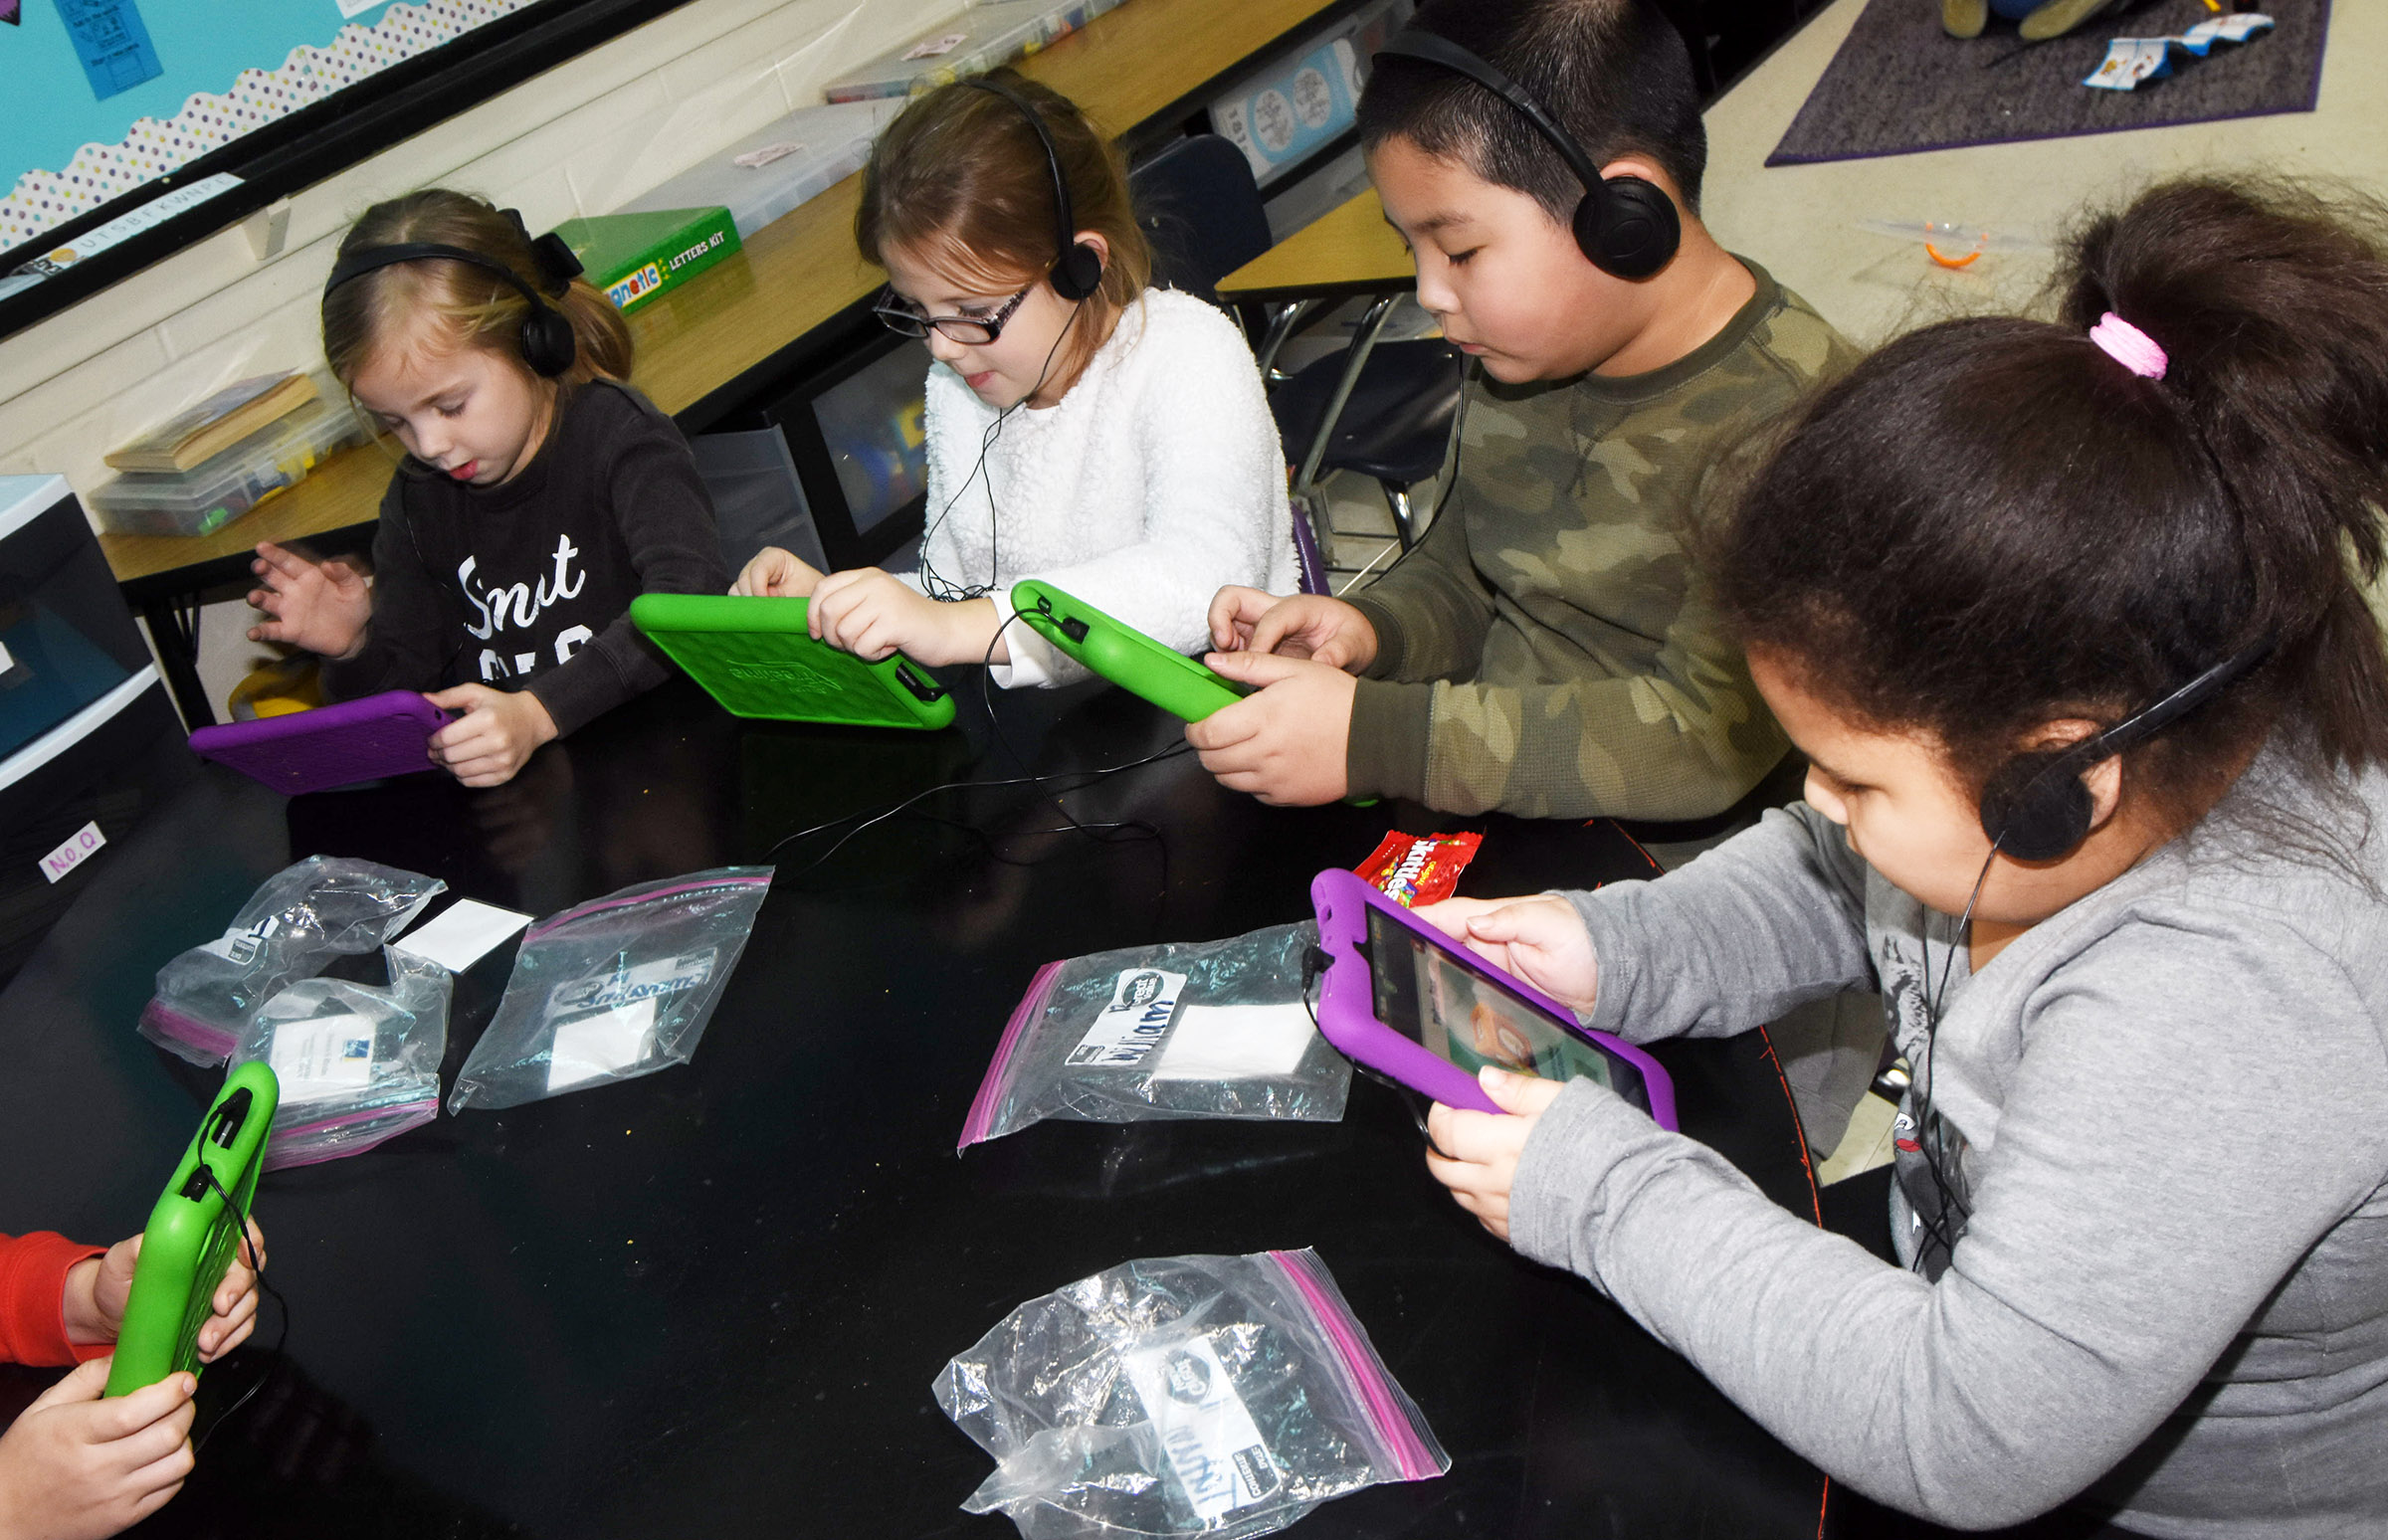 From left, CES first-graders Trinidy Gribbins, Bailey Freeman, William Li and Tatum Hoskins play games on their tablets.